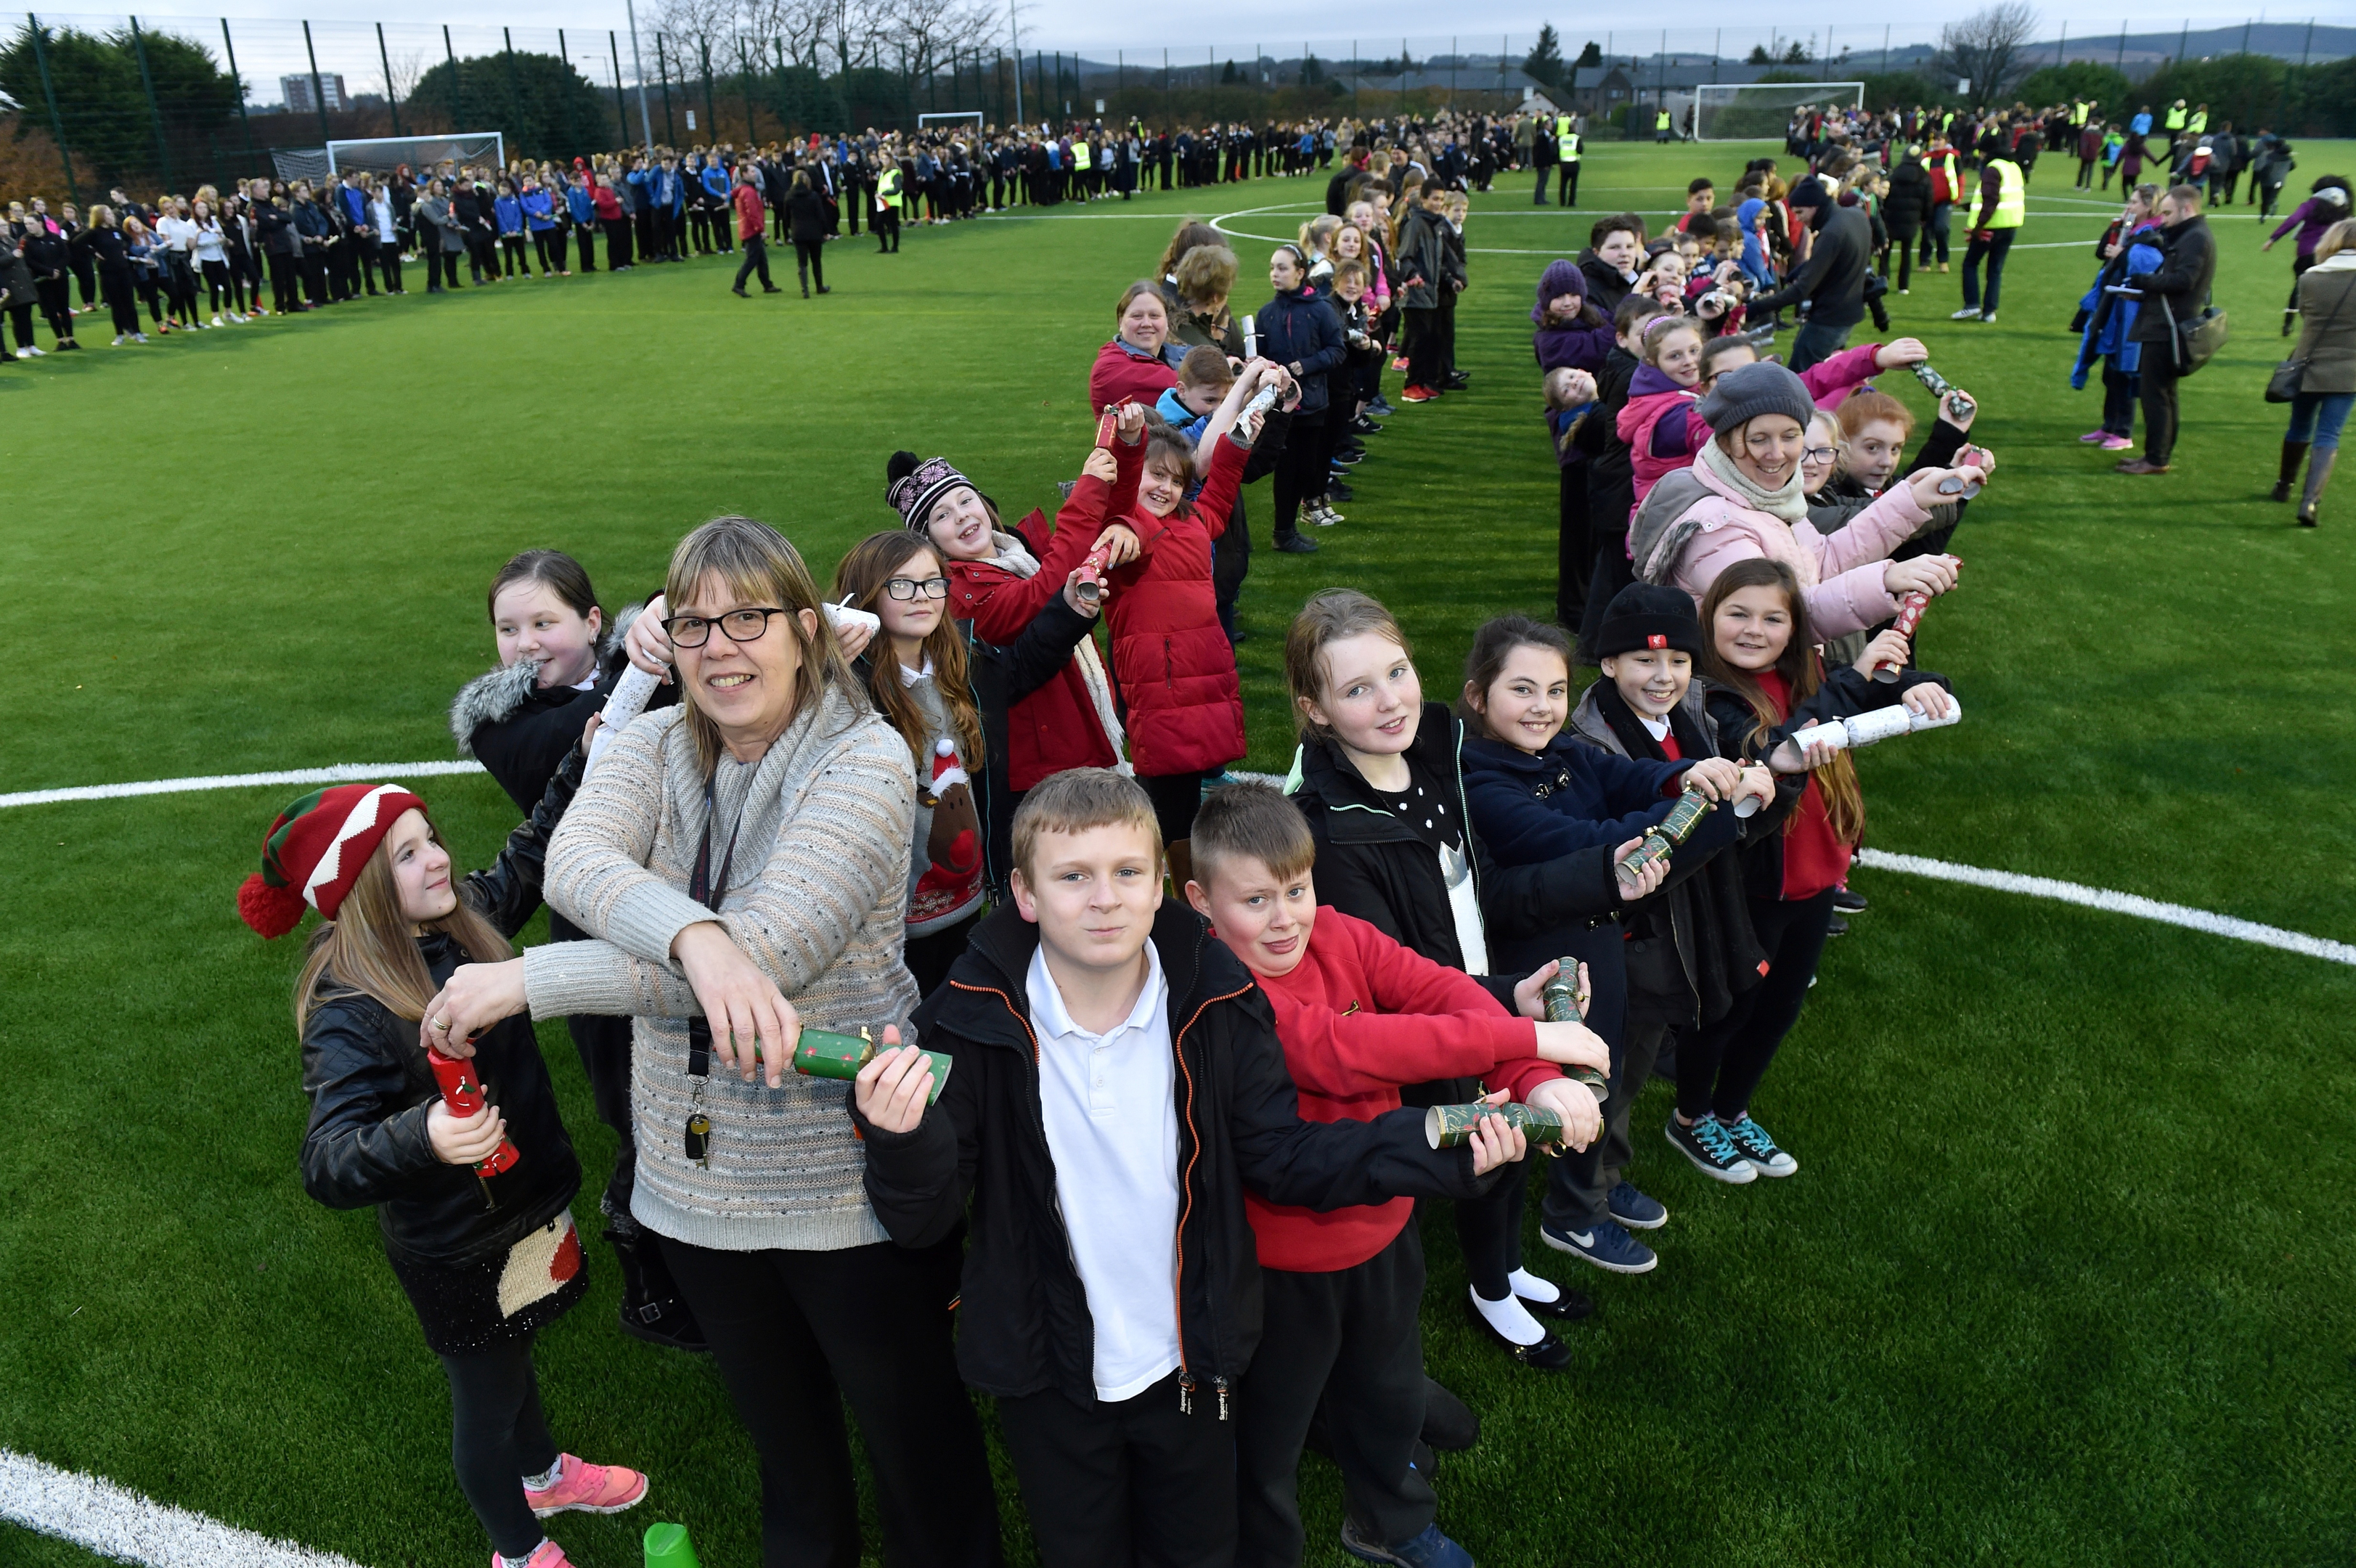 Hundreds of pupils and staff took part